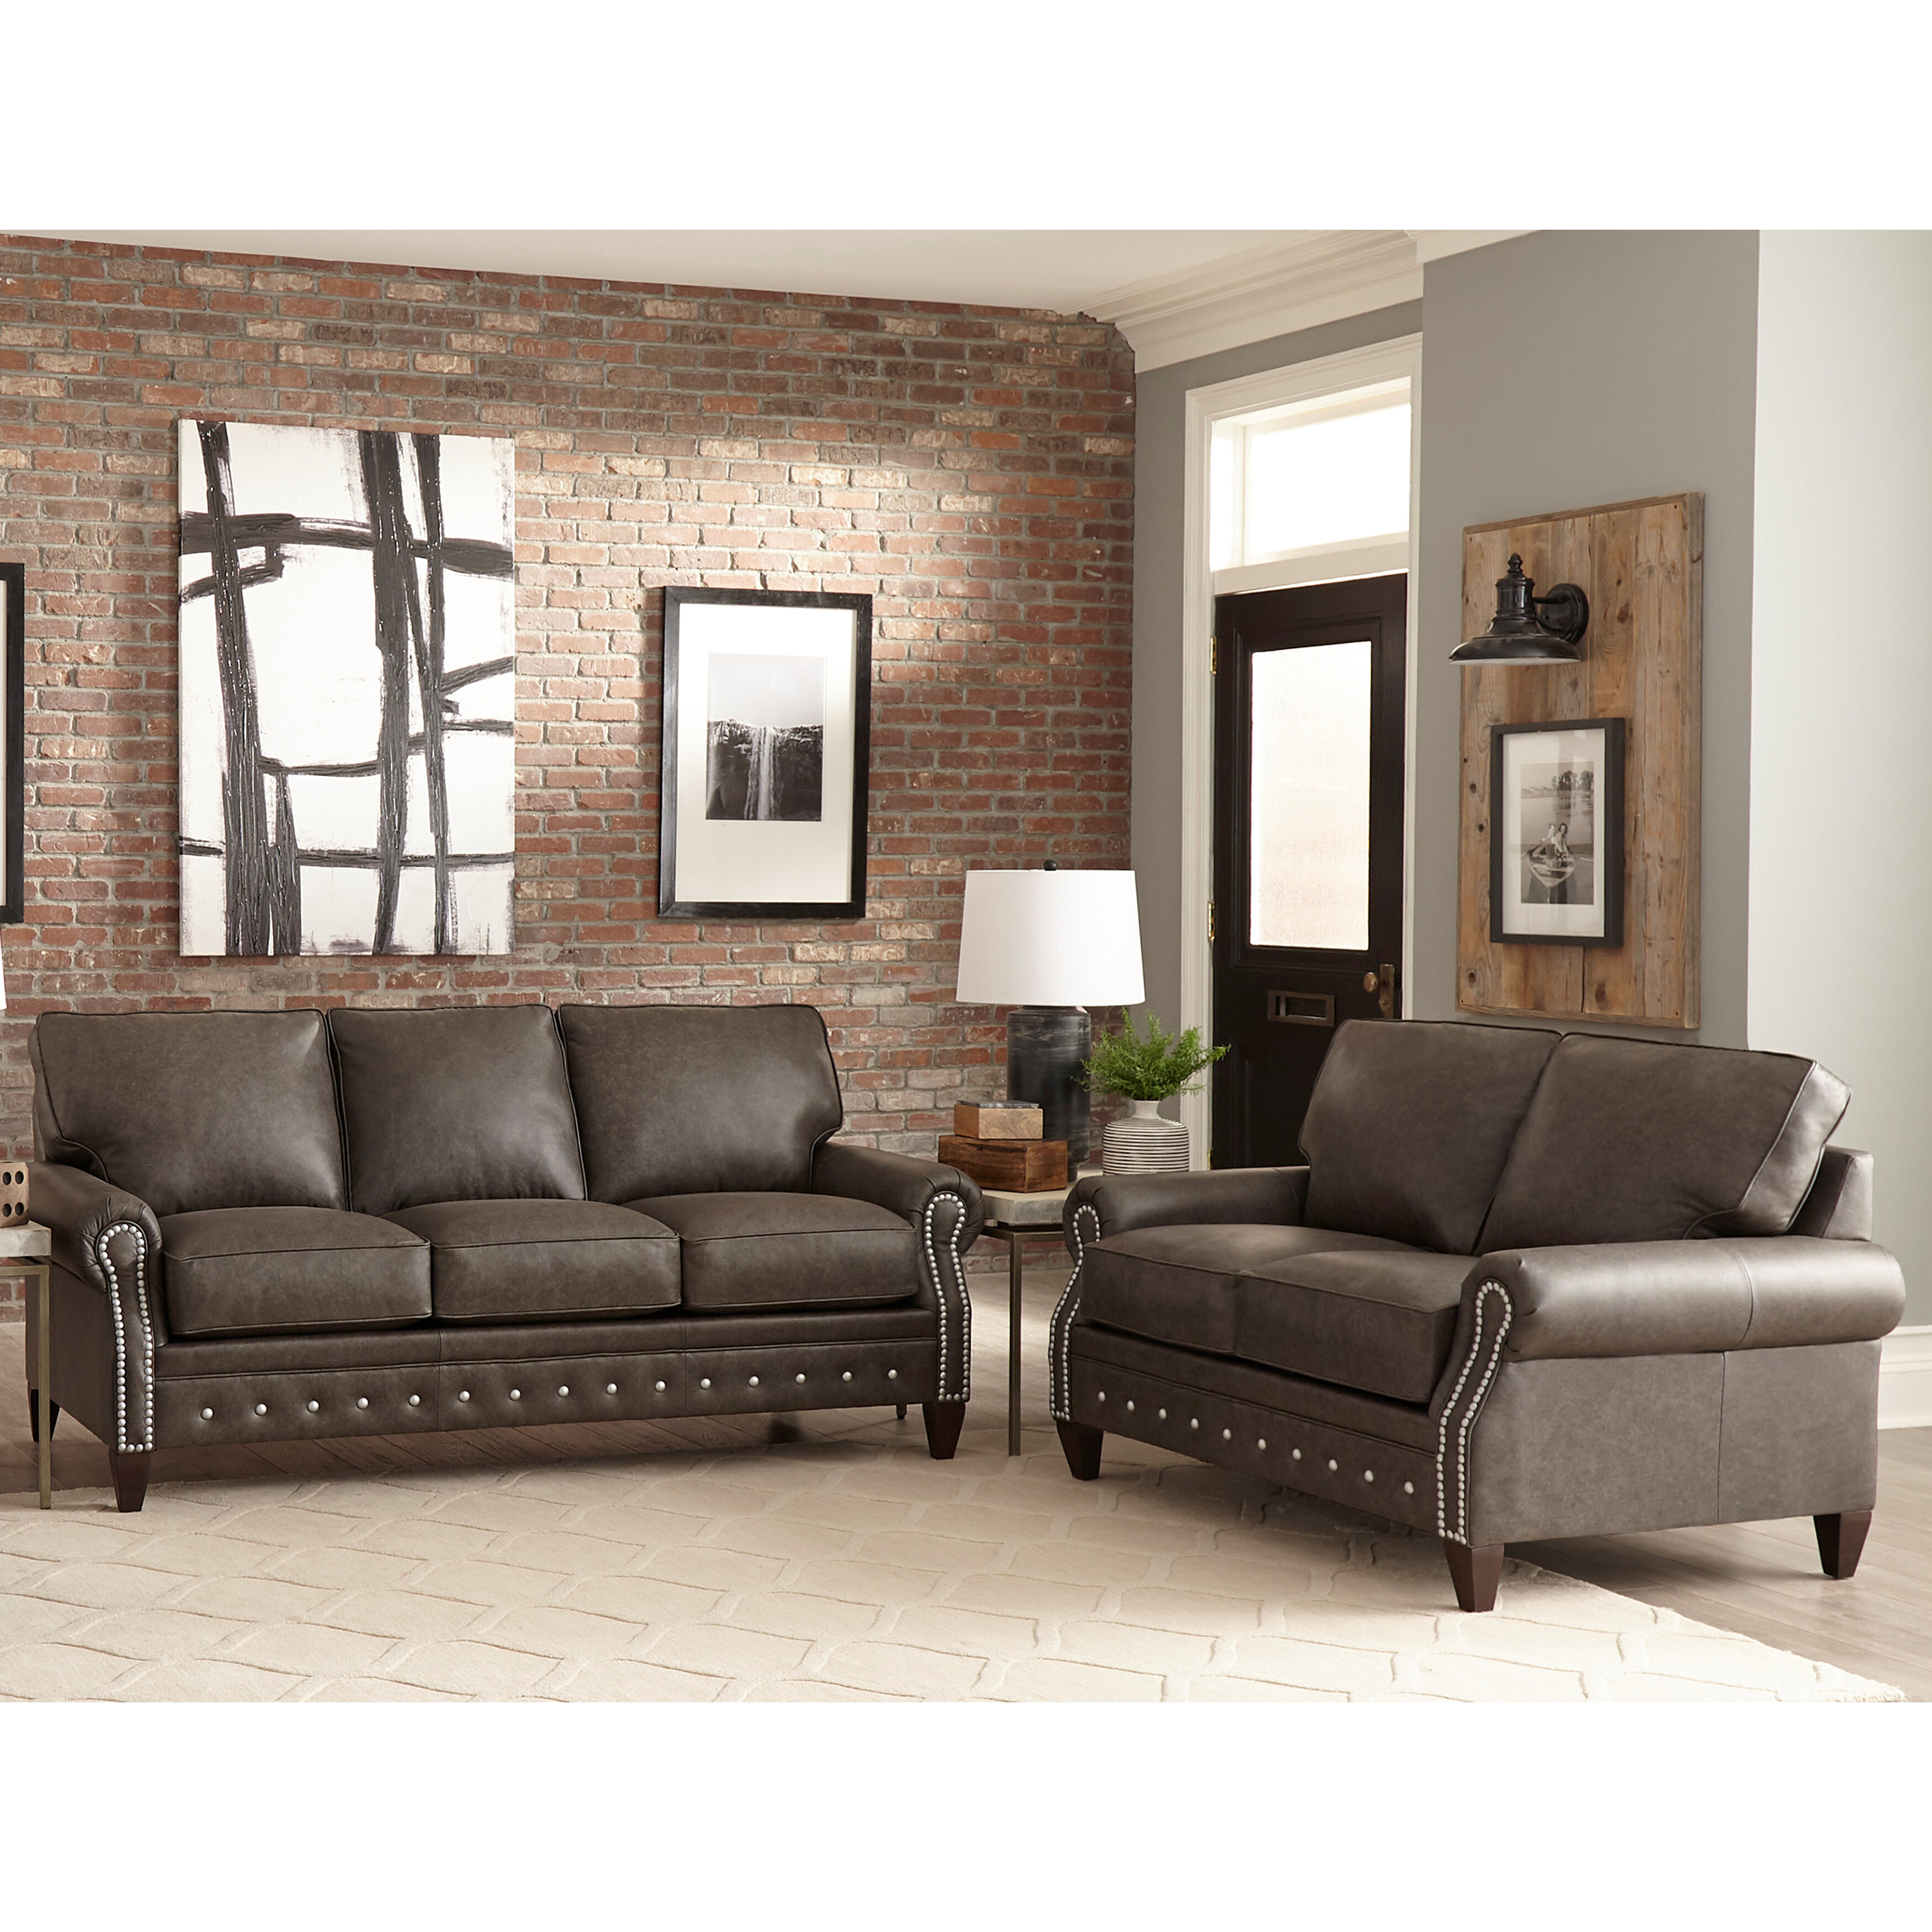 Jacey 10 Piece Leather Living Room Set